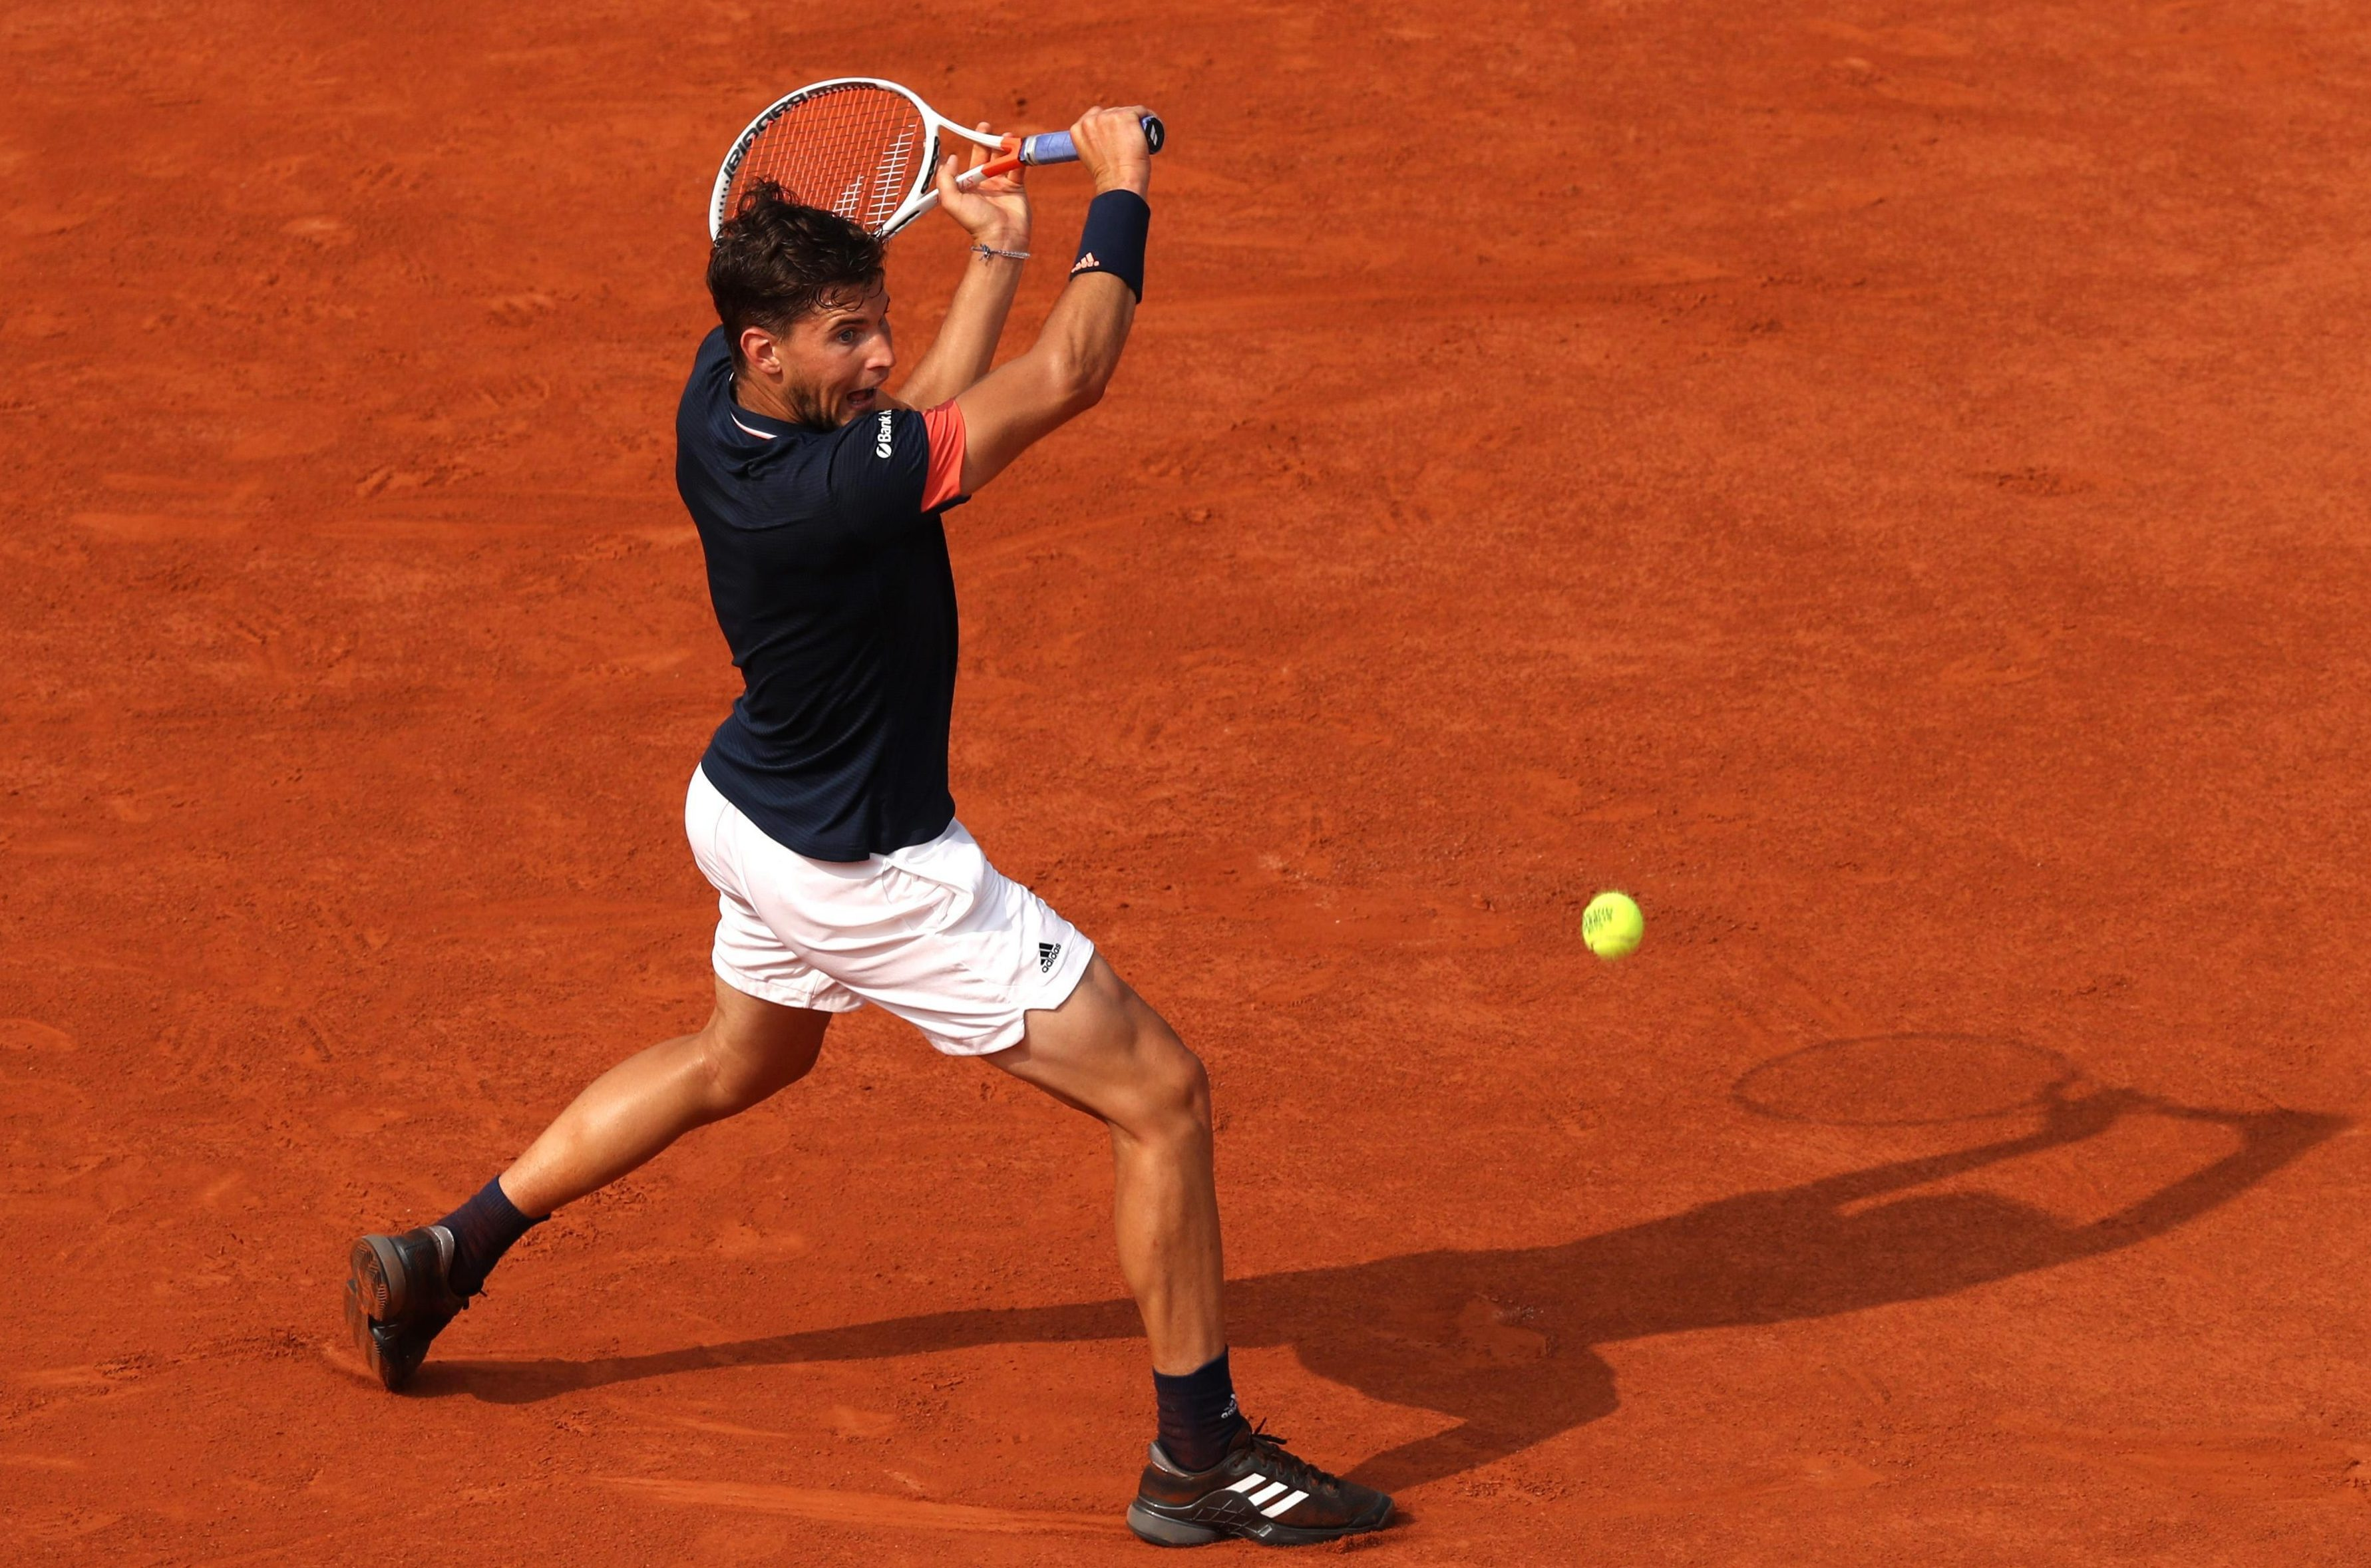 Thiem didn't make life easy for the tennis legend and Nadal himself said he believed the young star would win Roland Garros in the future